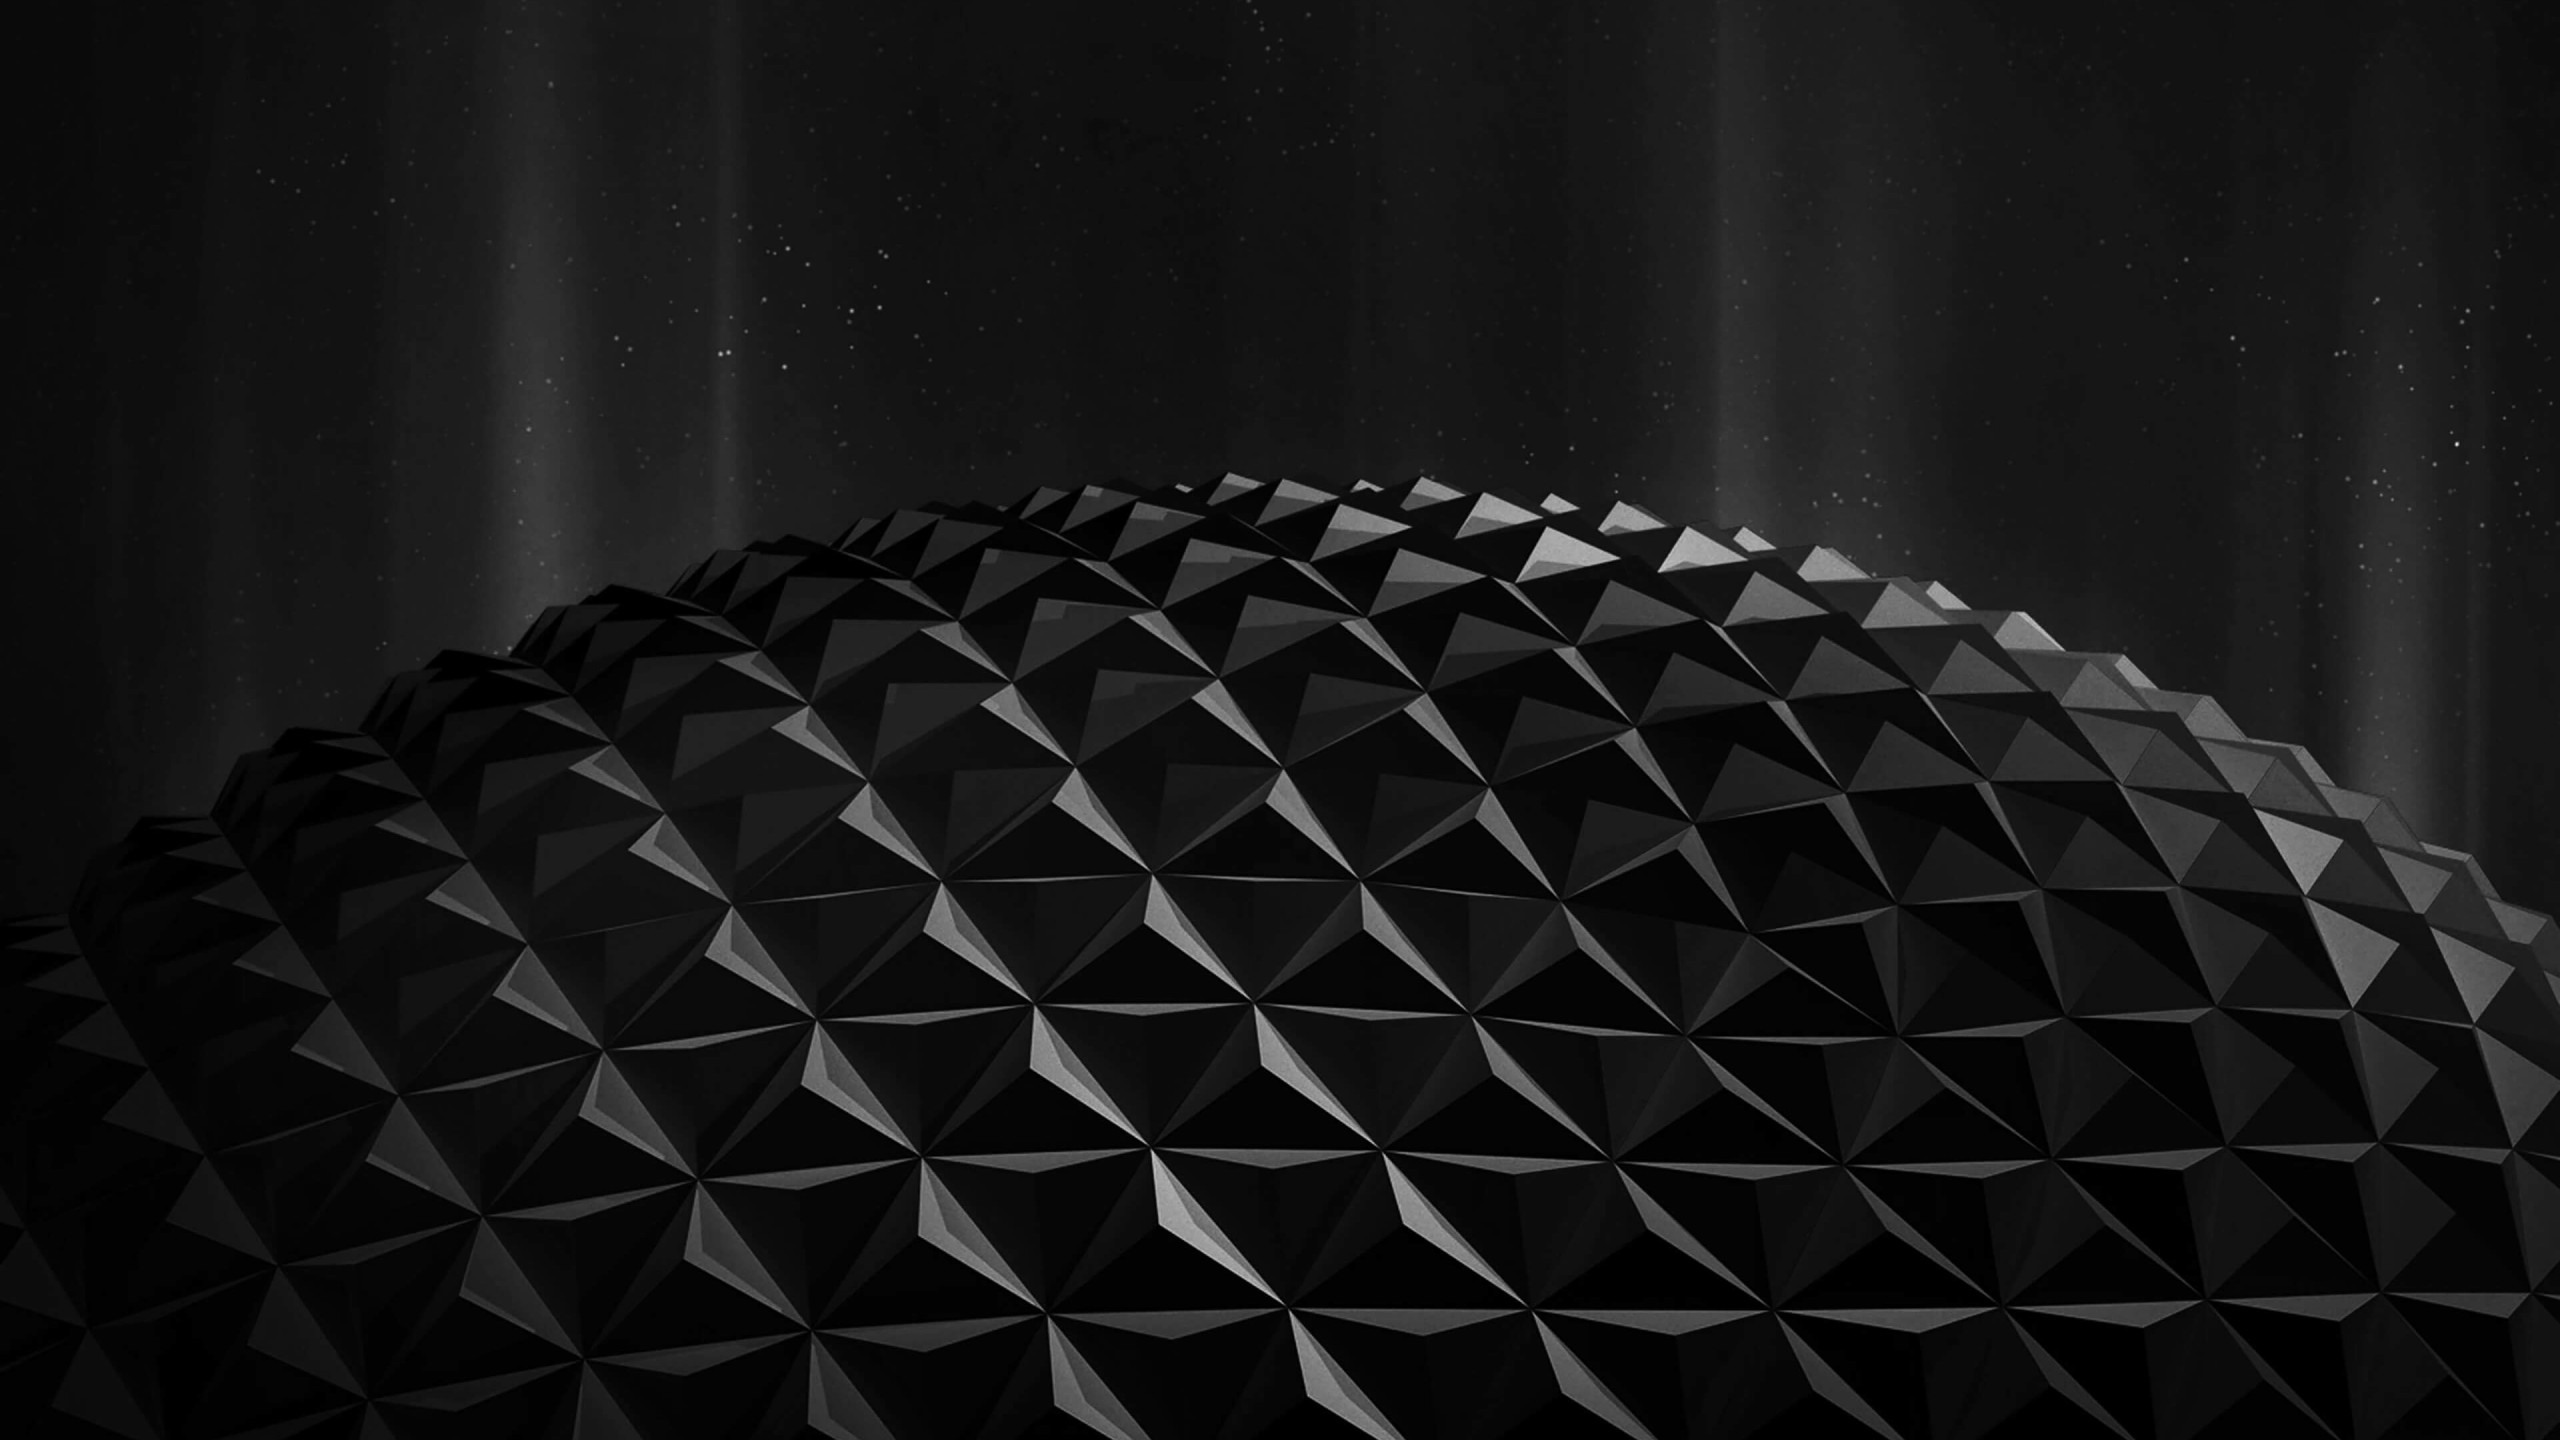 Black Polygon Planet Wallpaper for Social Media YouTube Channel Art